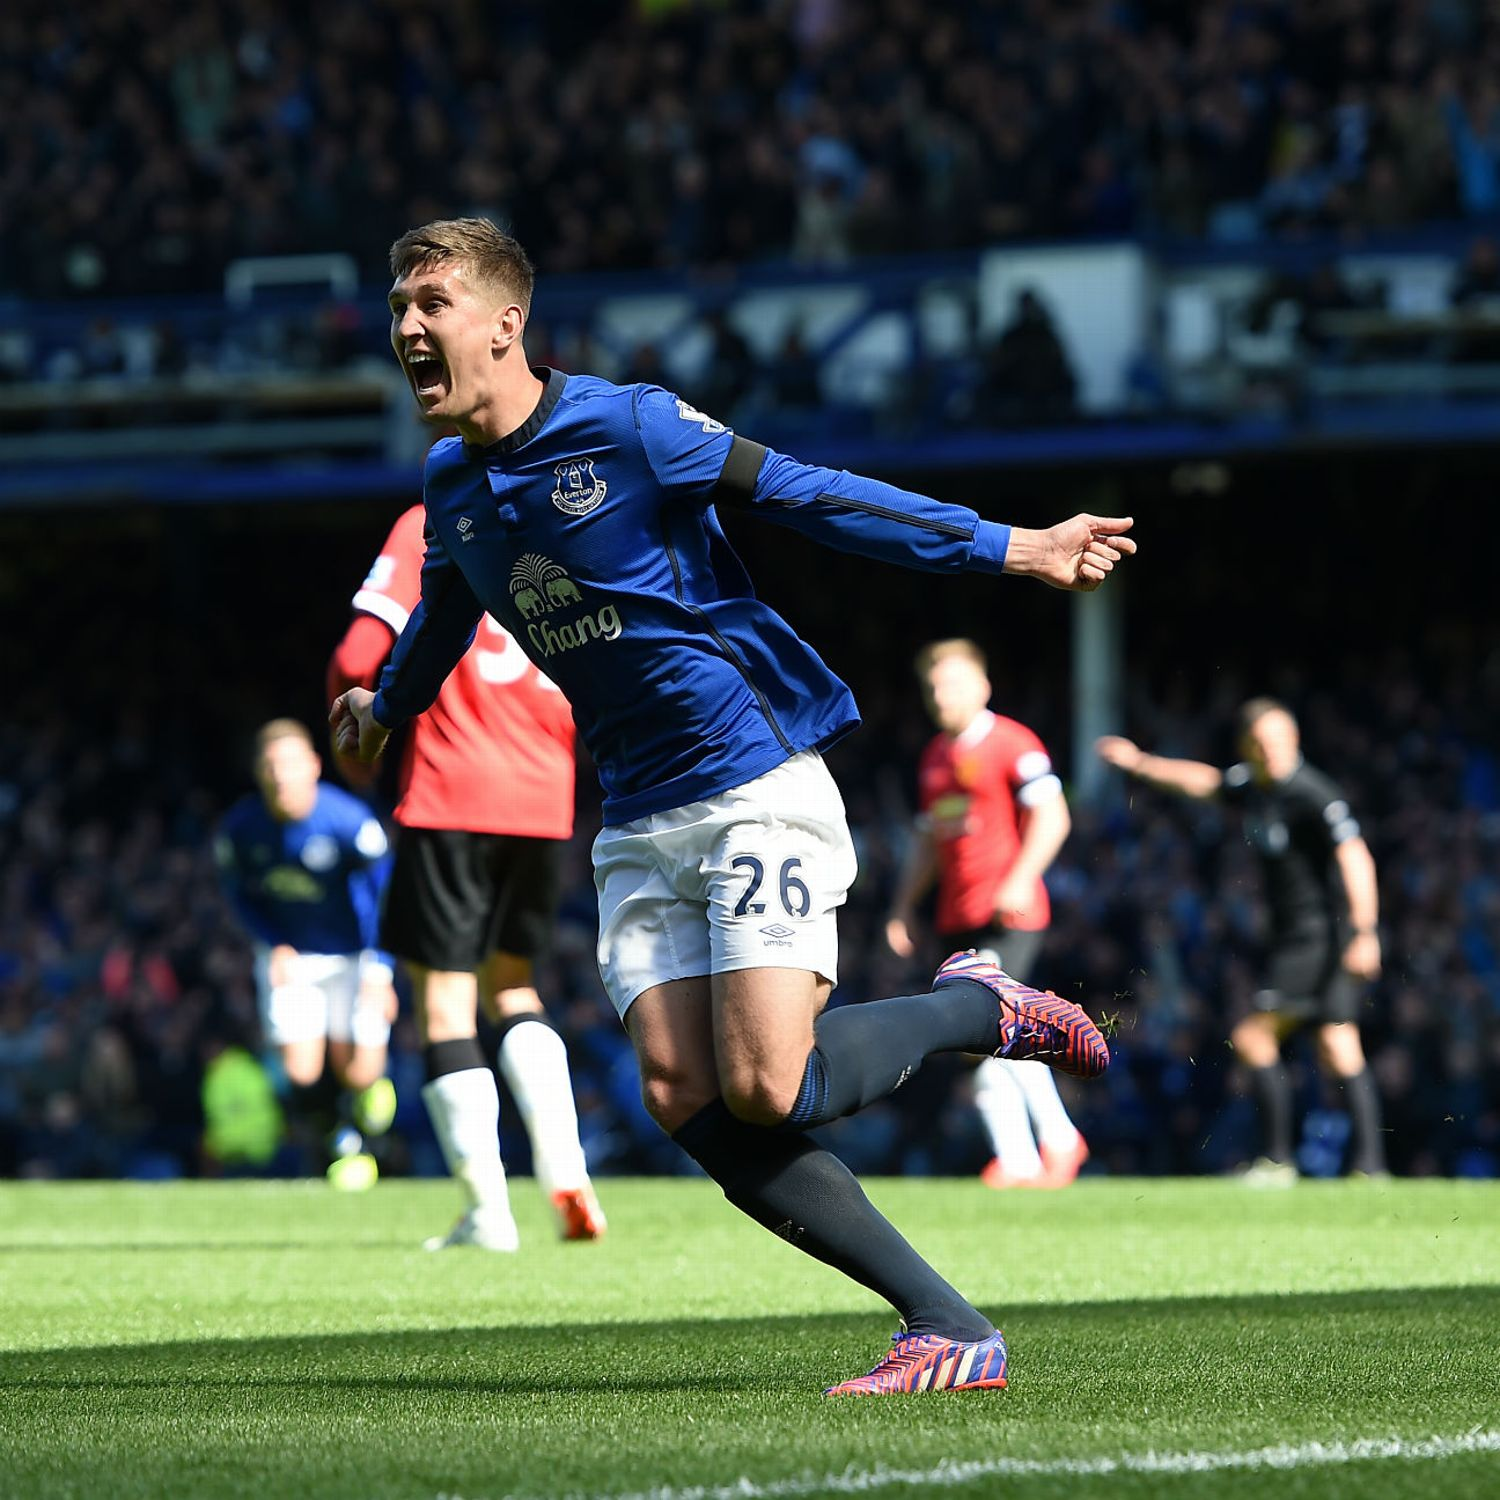 Epl Matches Live On Rcti Indonesia Tv Channel: Everton Ease Past Manchester United